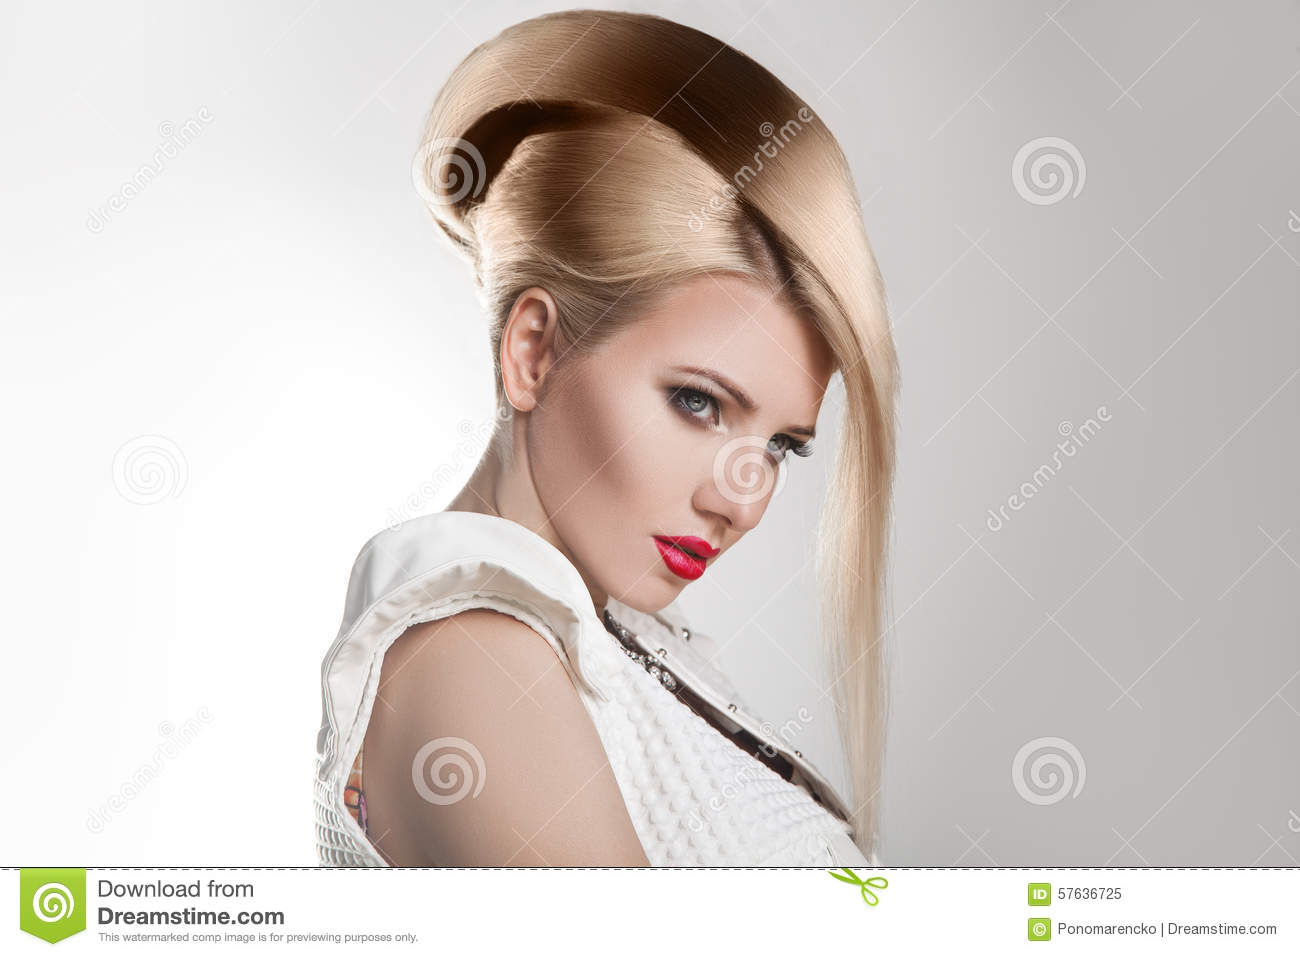 Prime Haircut Beautiful Girl With Healthy Short Blond Hair Hairstyle Short Hairstyles For Black Women Fulllsitofus